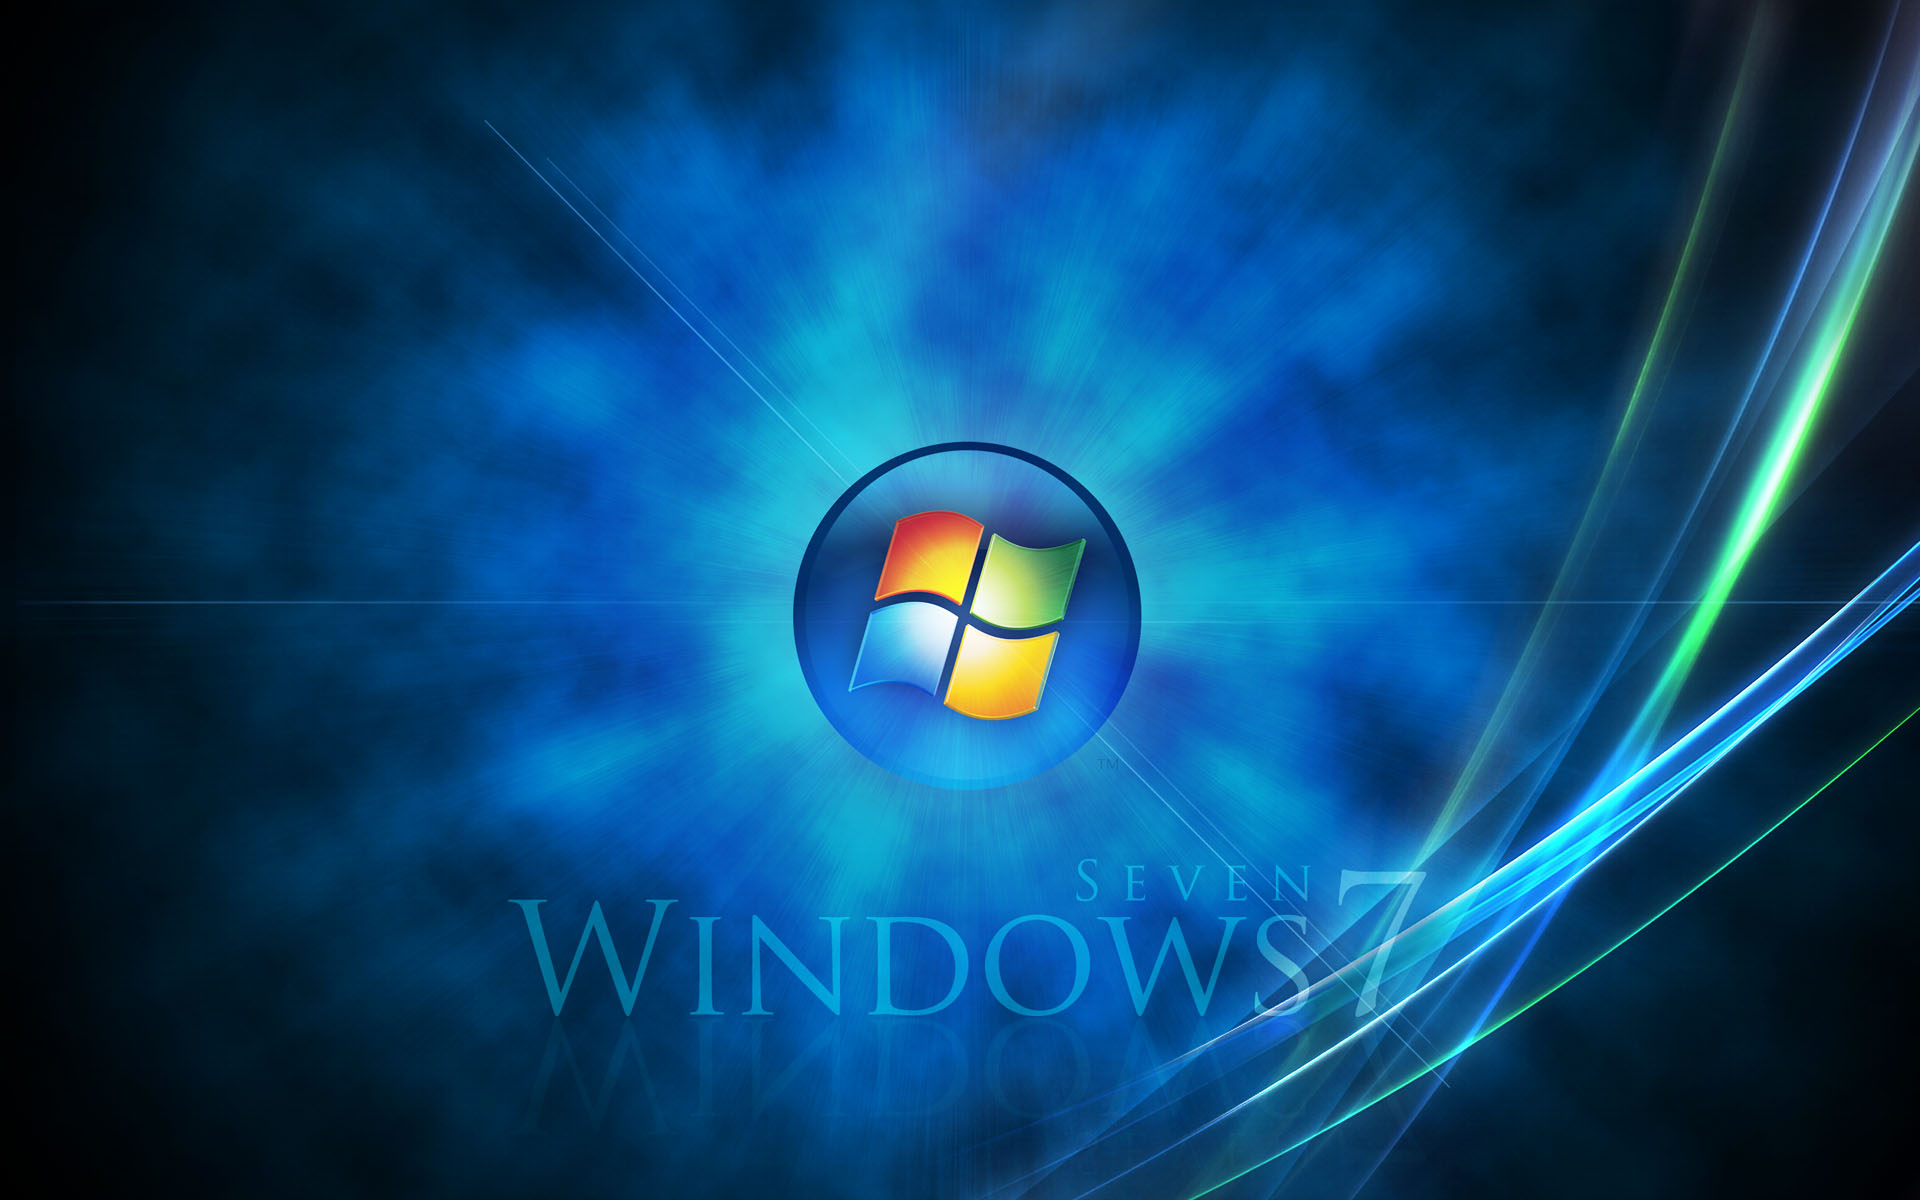 windows 7 desktop backgrounds - sf wallpaper